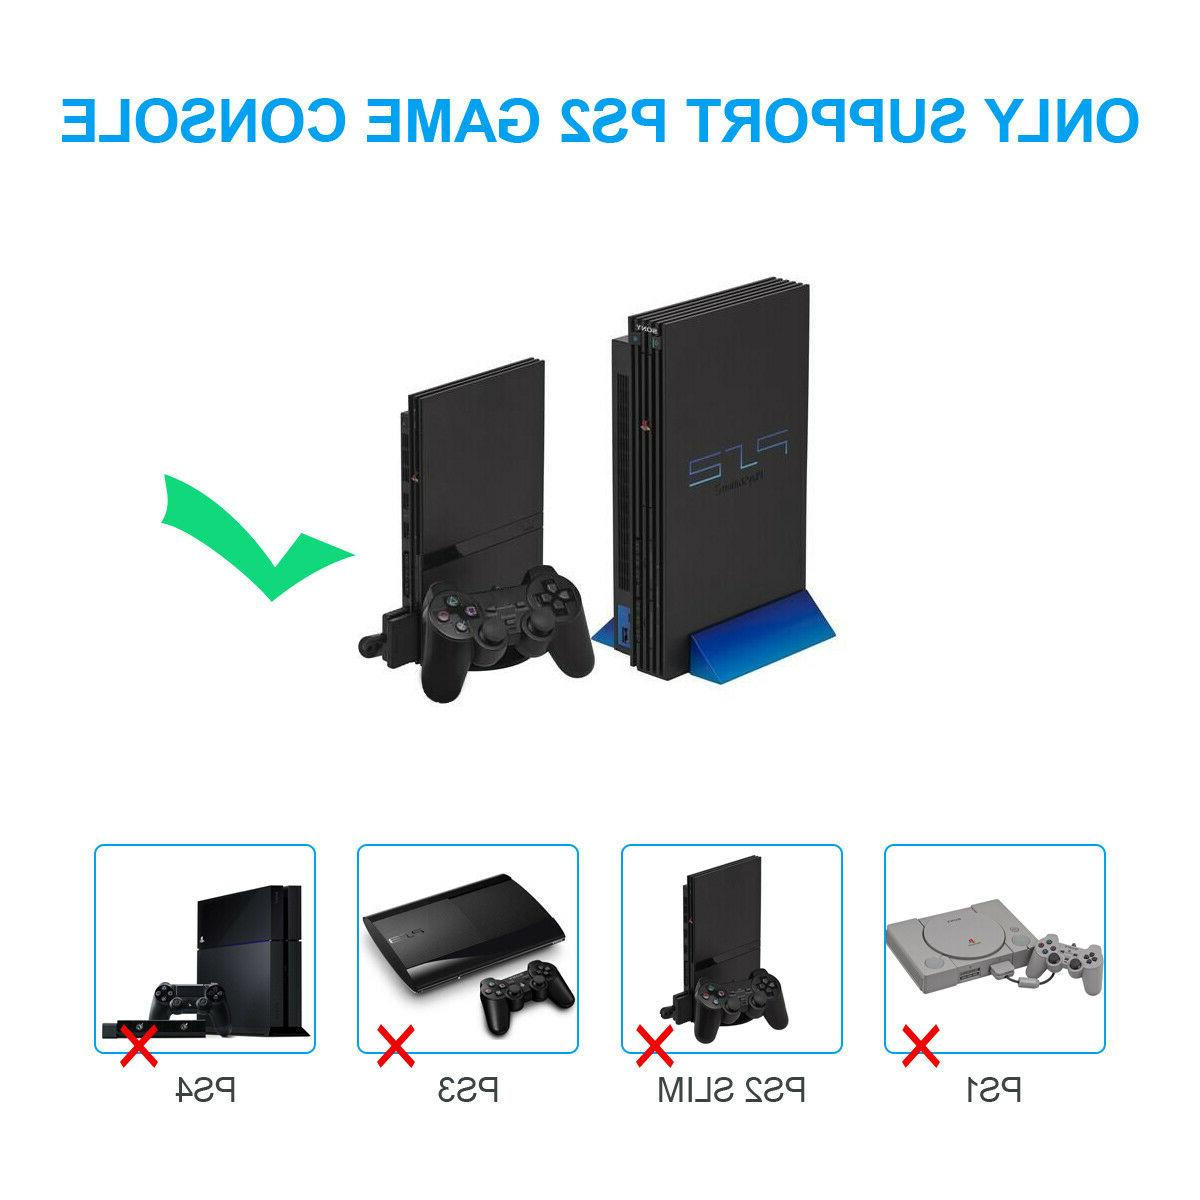 PS2 to Video Converter Adapter Audio Output Monitor